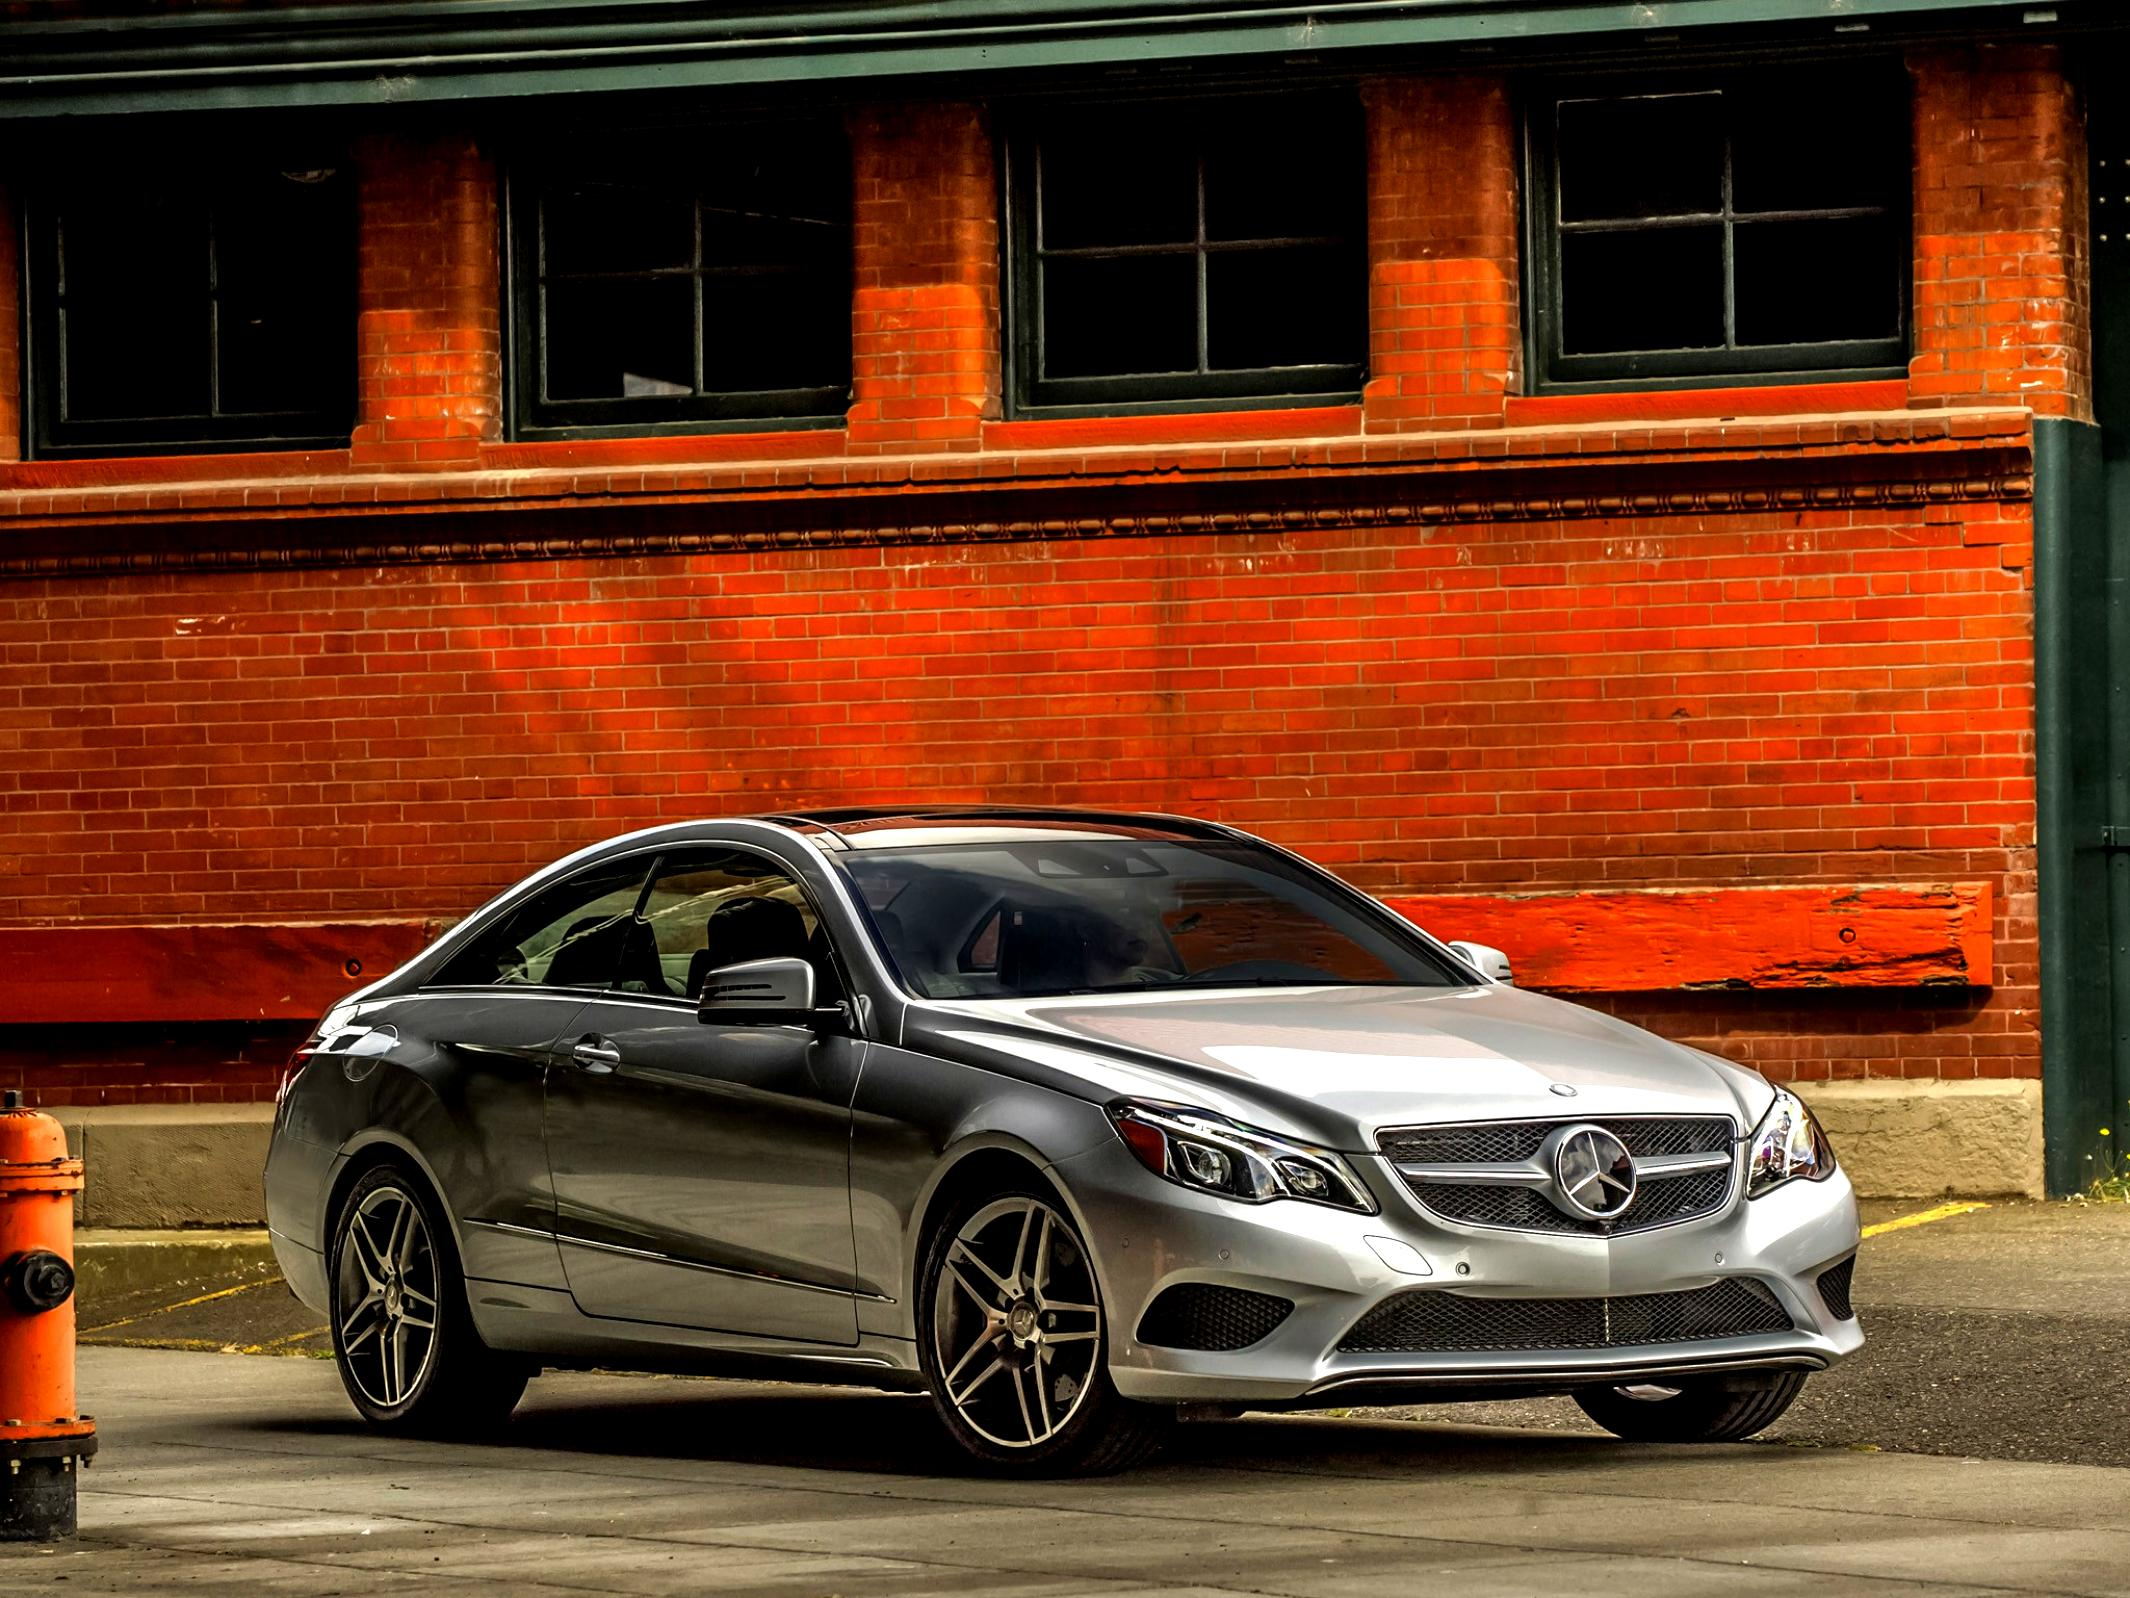 Mercedes Benz E-Klasse Coupe C207 2013 #60